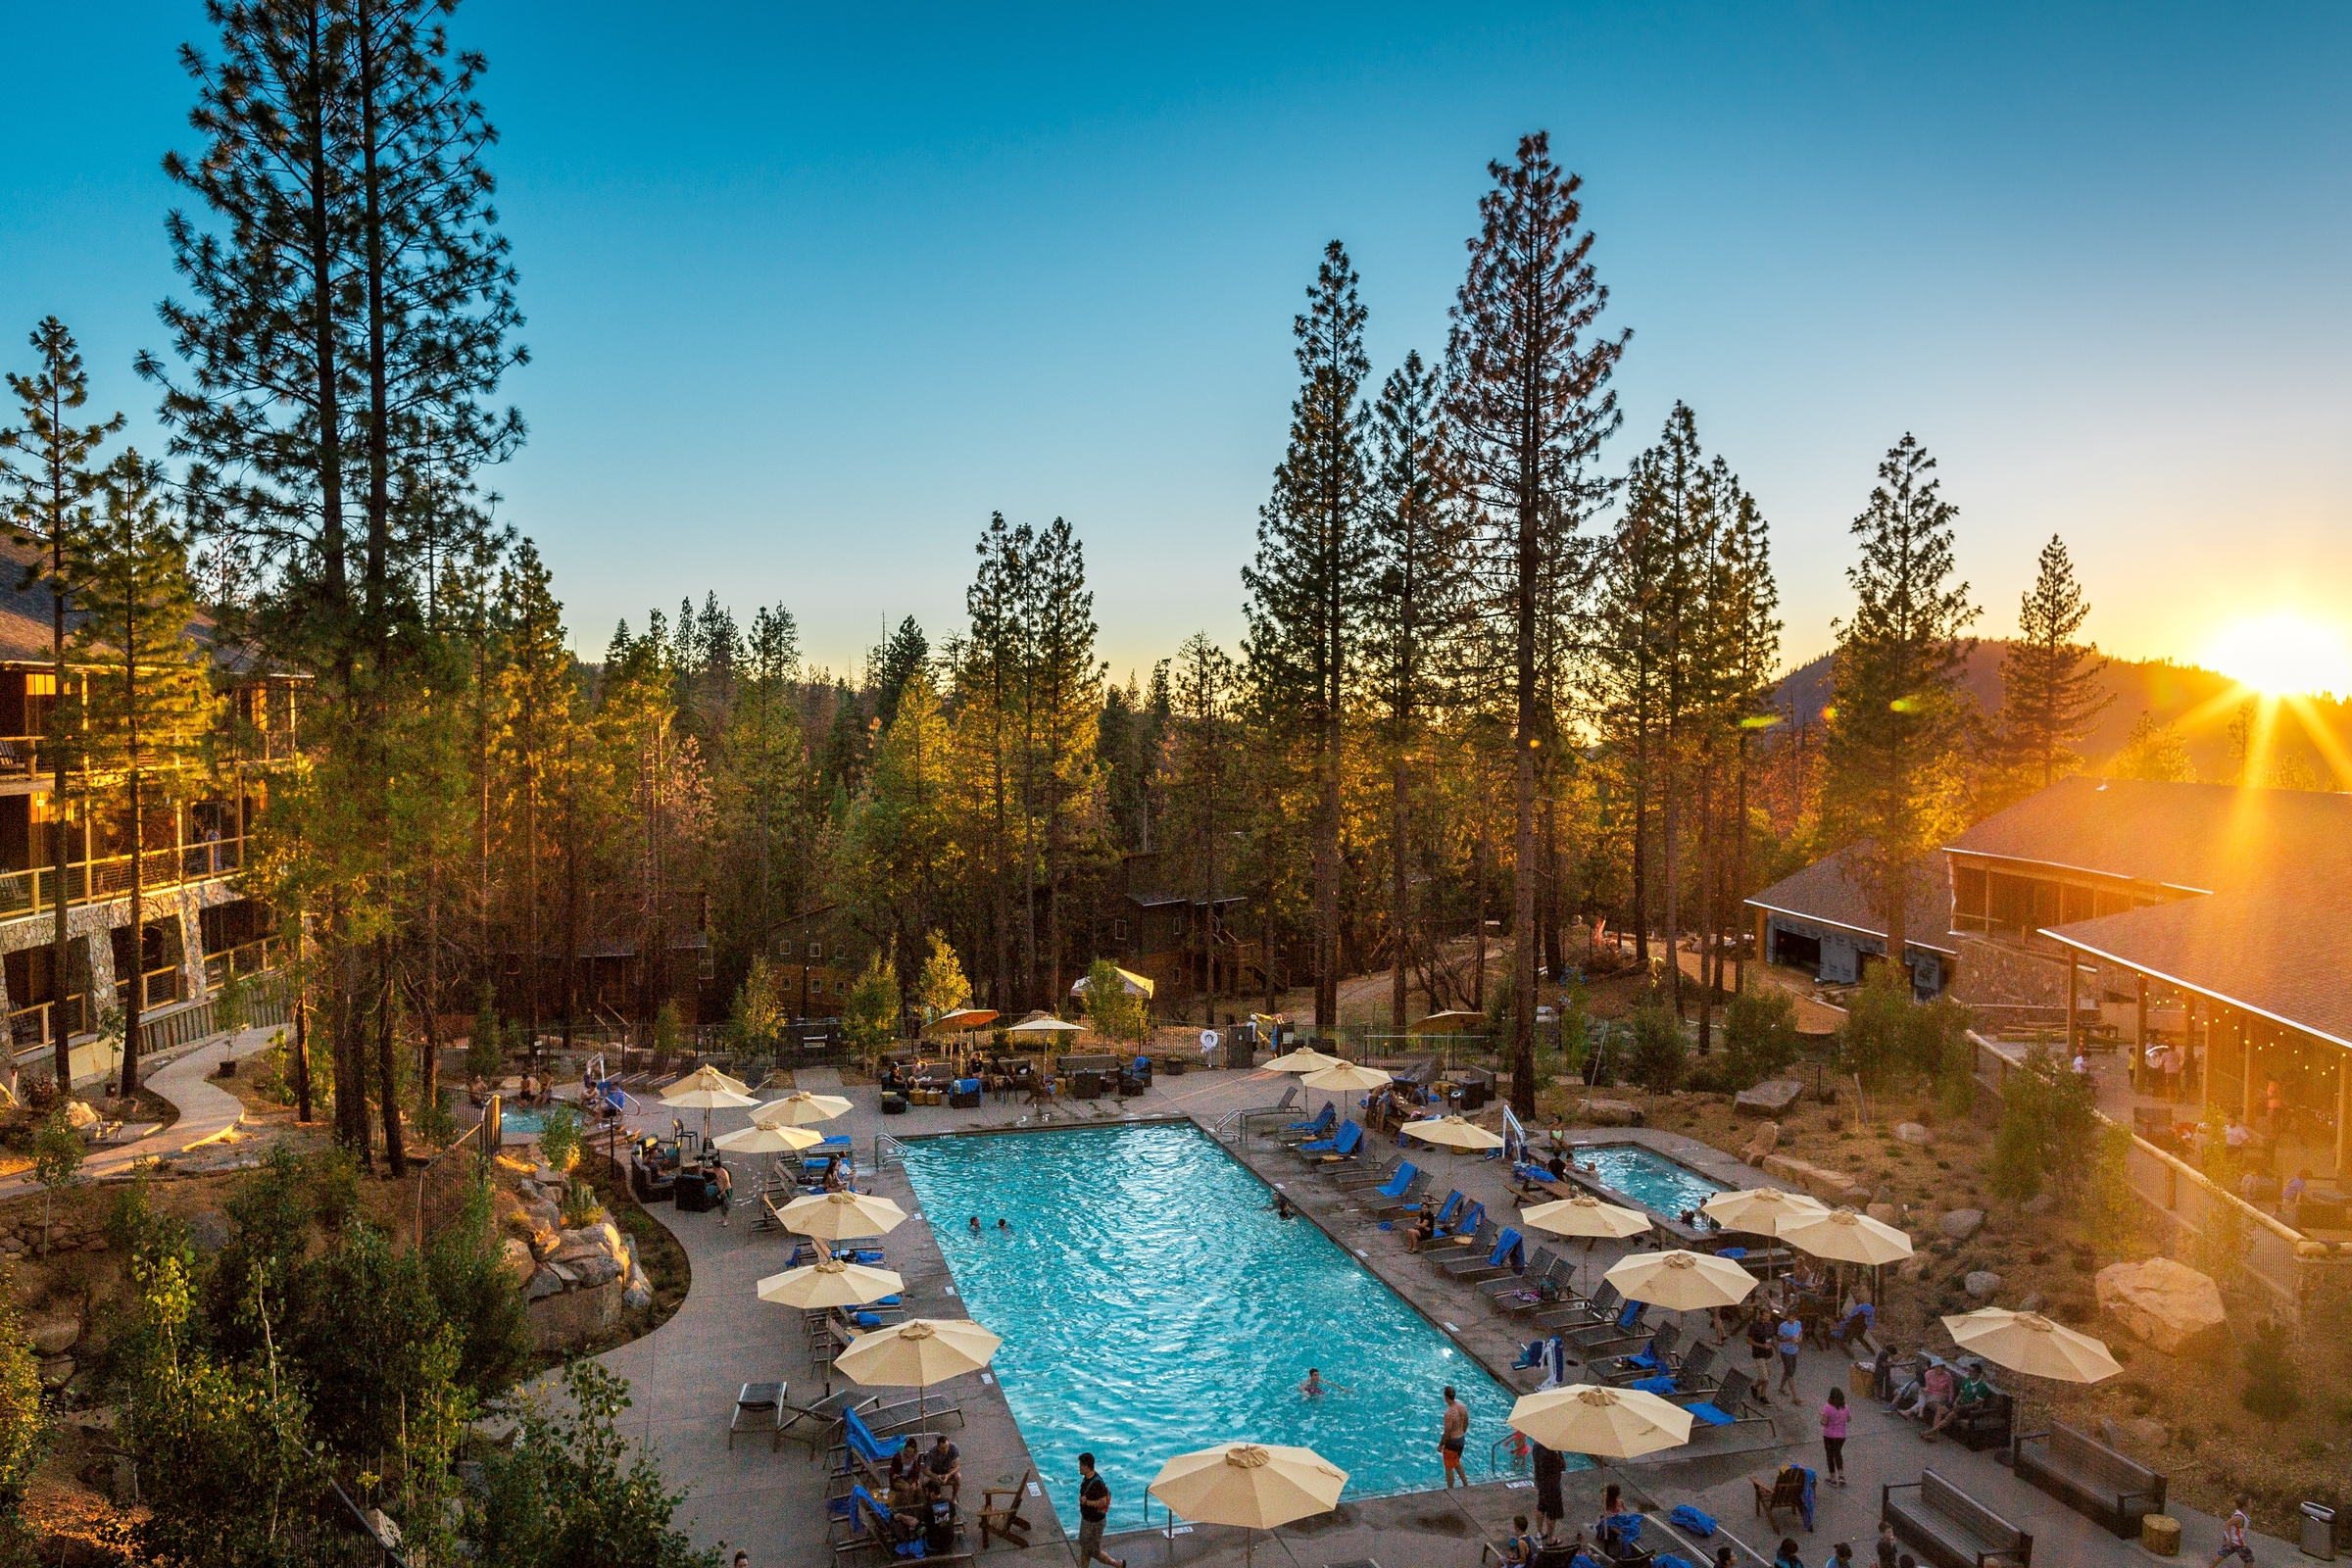 THE POOL at  RUSH CREEK LODGE  IN YOSEMITE NATIONAL PARK